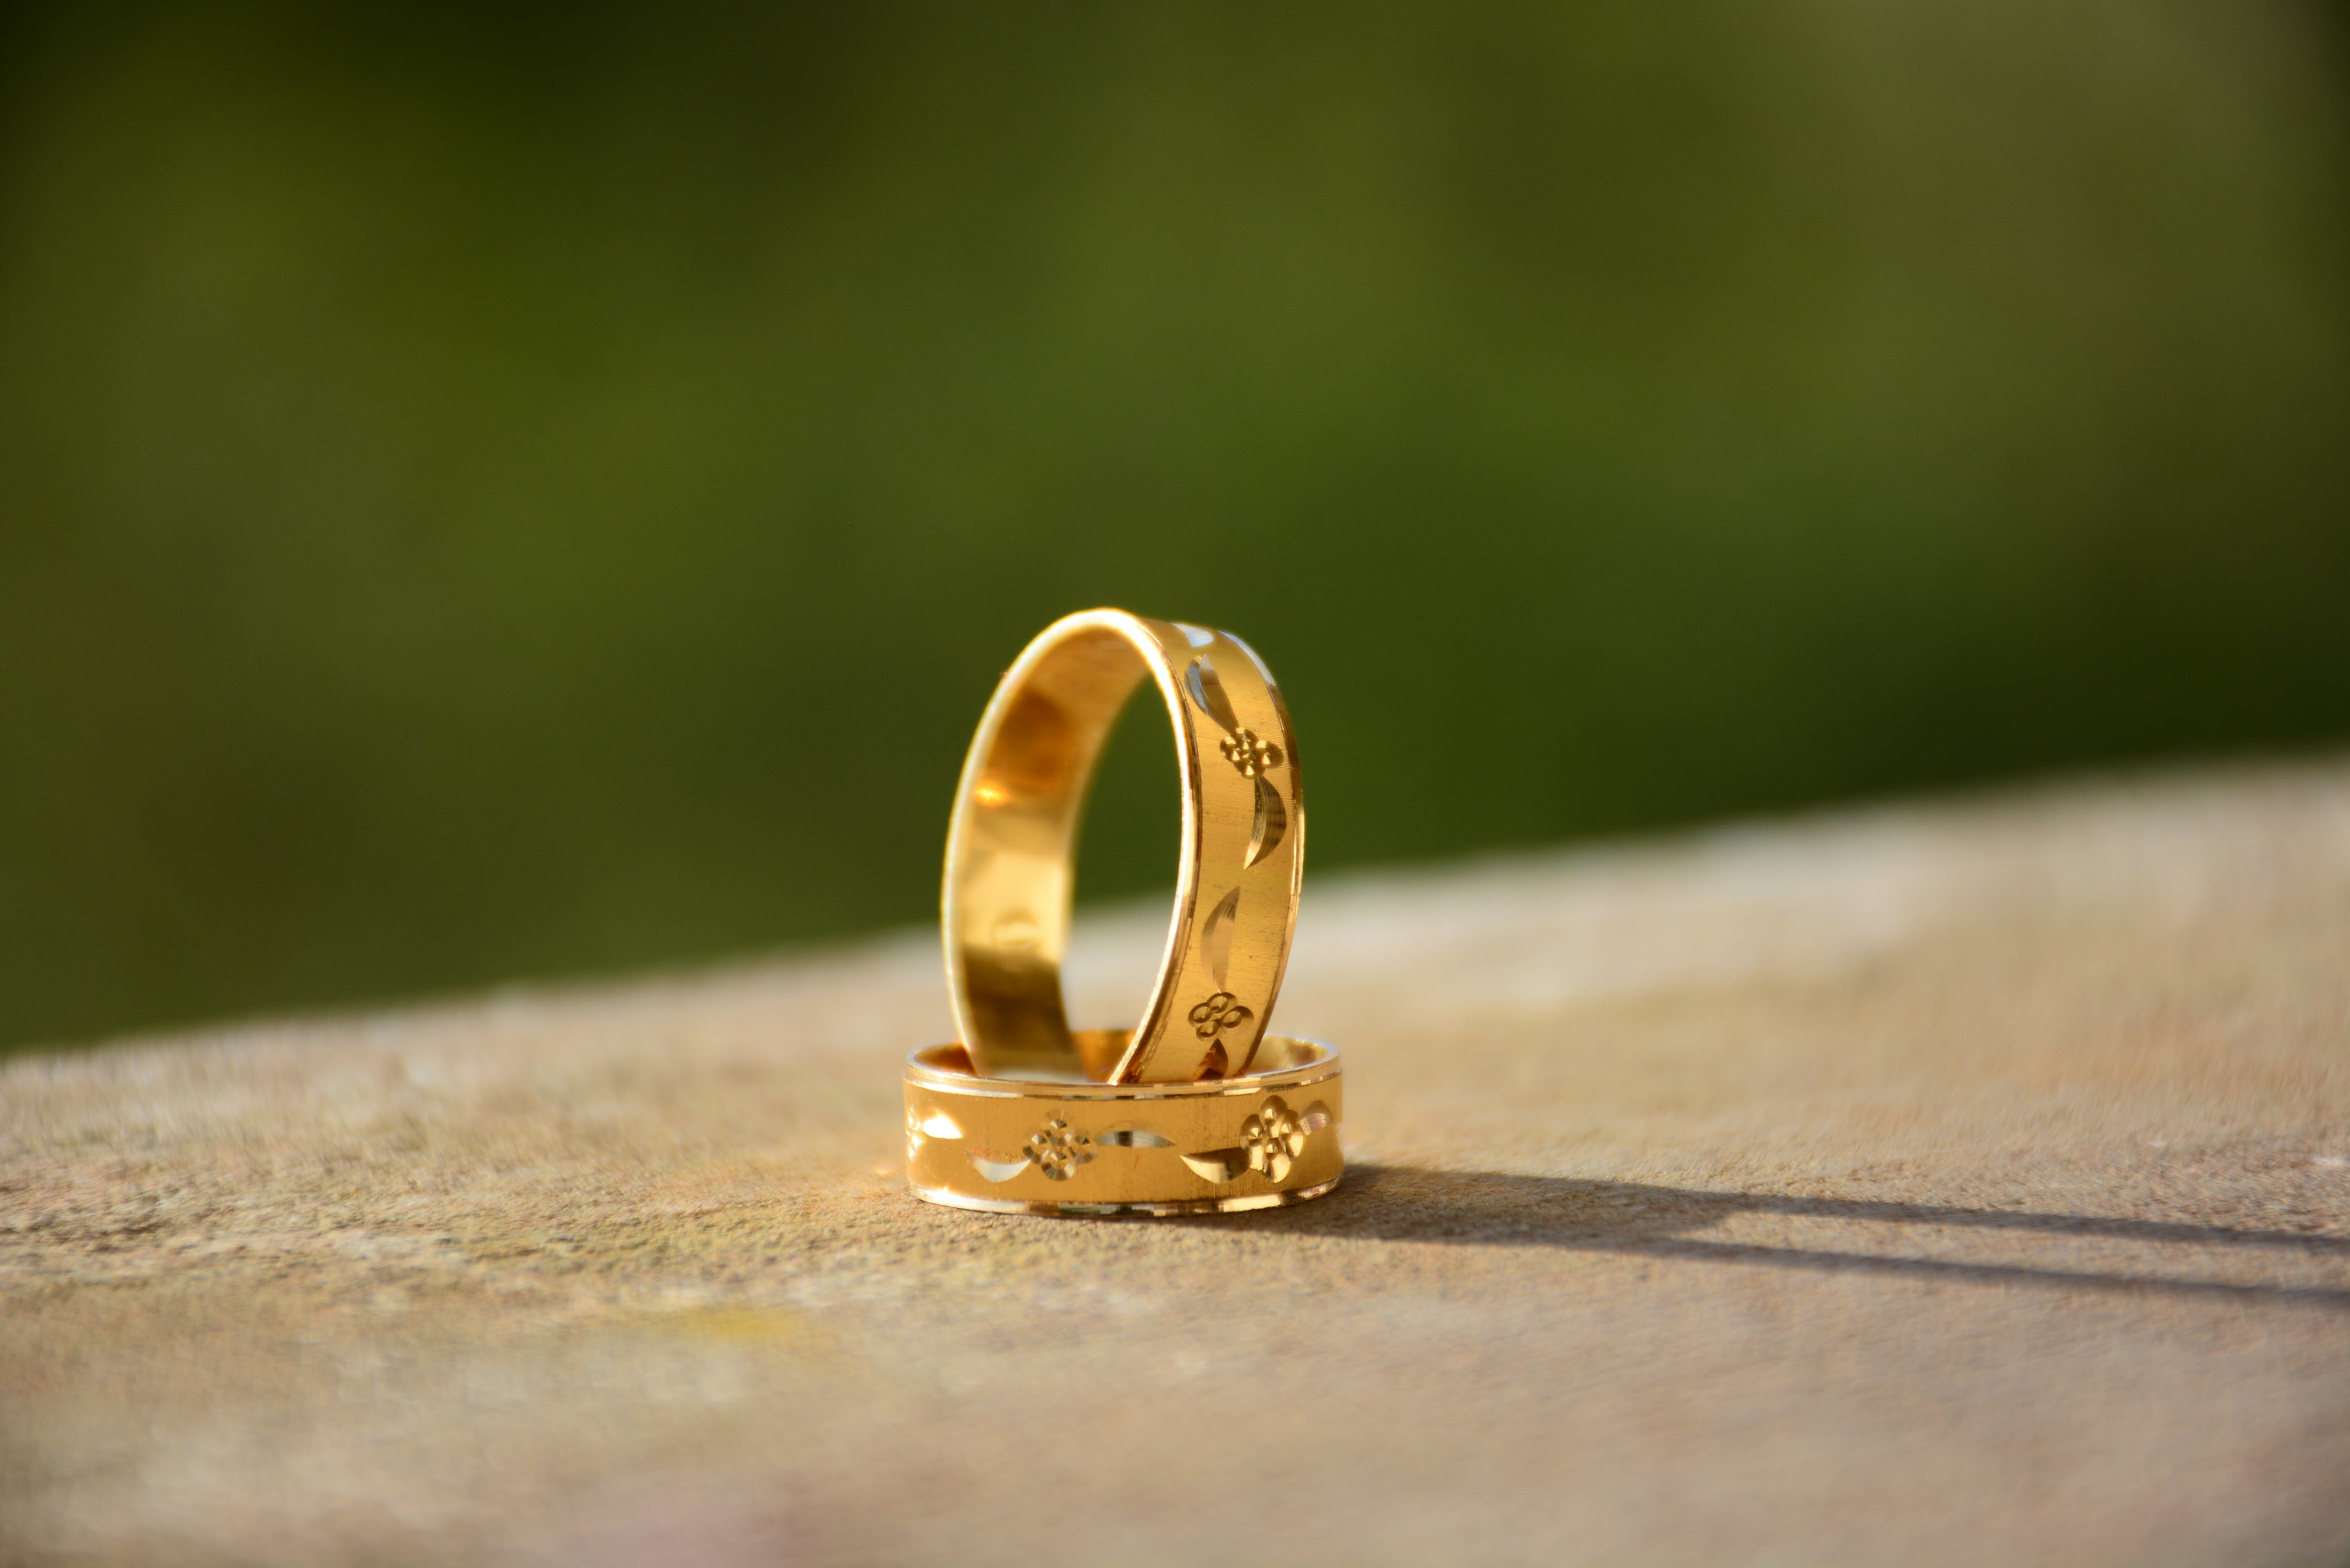 Close-Up Photo of Golden Rings